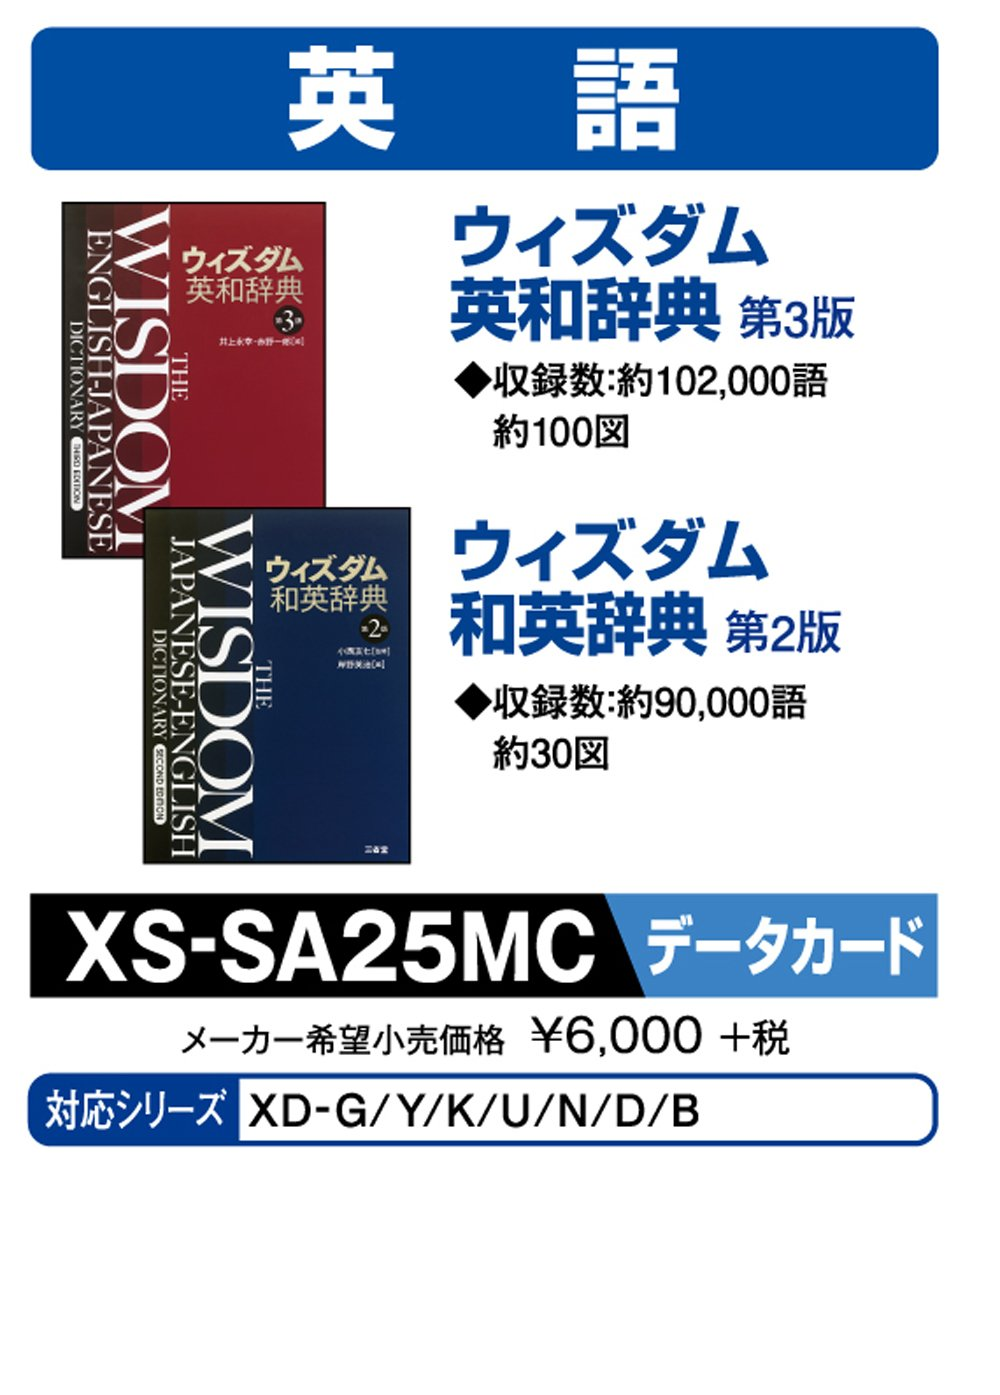 Casio electronic dictionary add content microSD card version of Wisdom English-Japanese Japanese-English dictionary XS-SA25MC